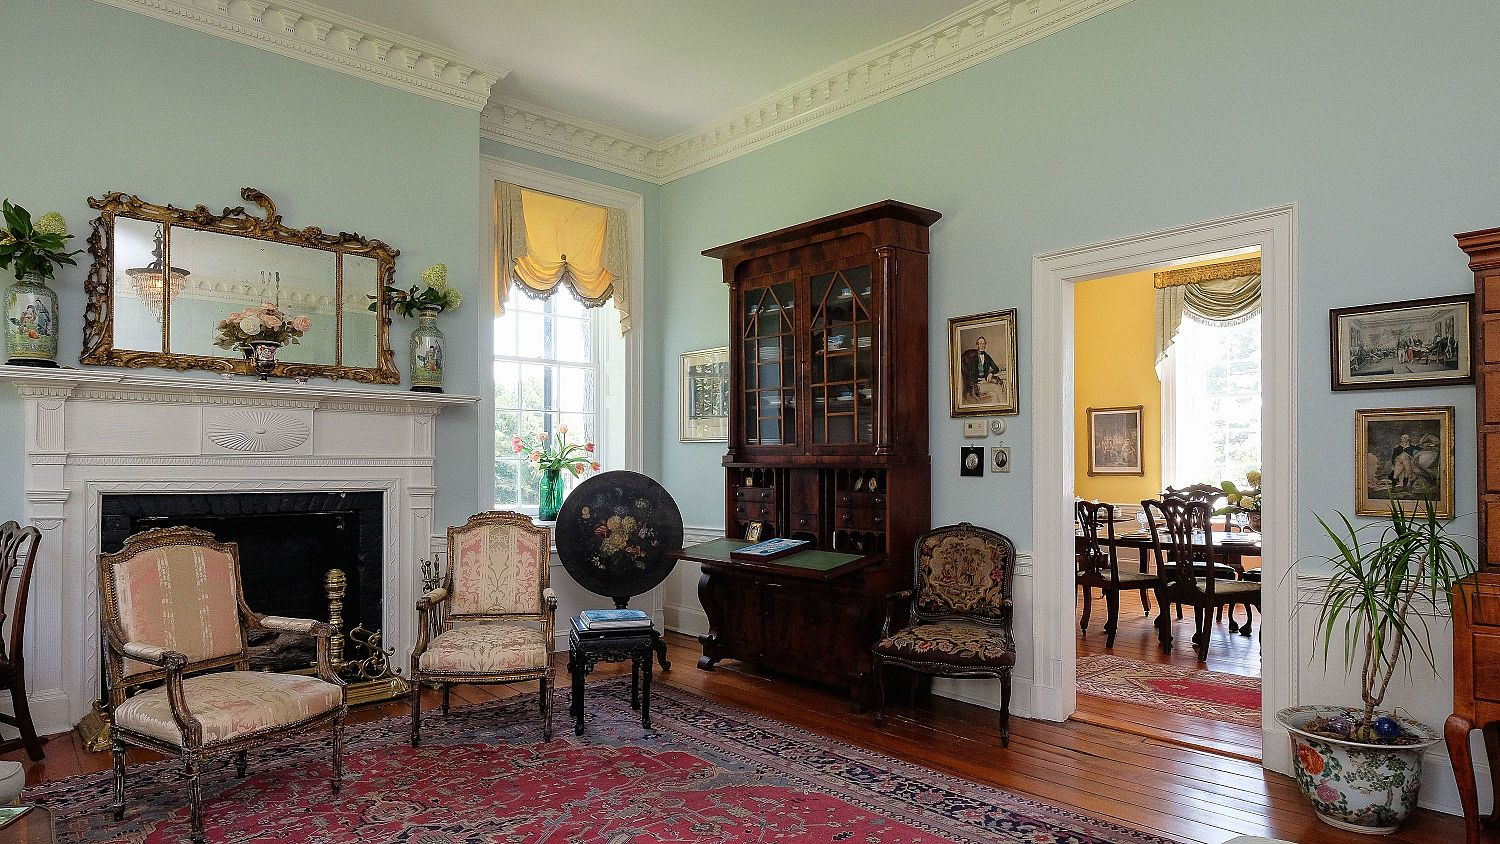 The living room of the Mulberry Hill manor house